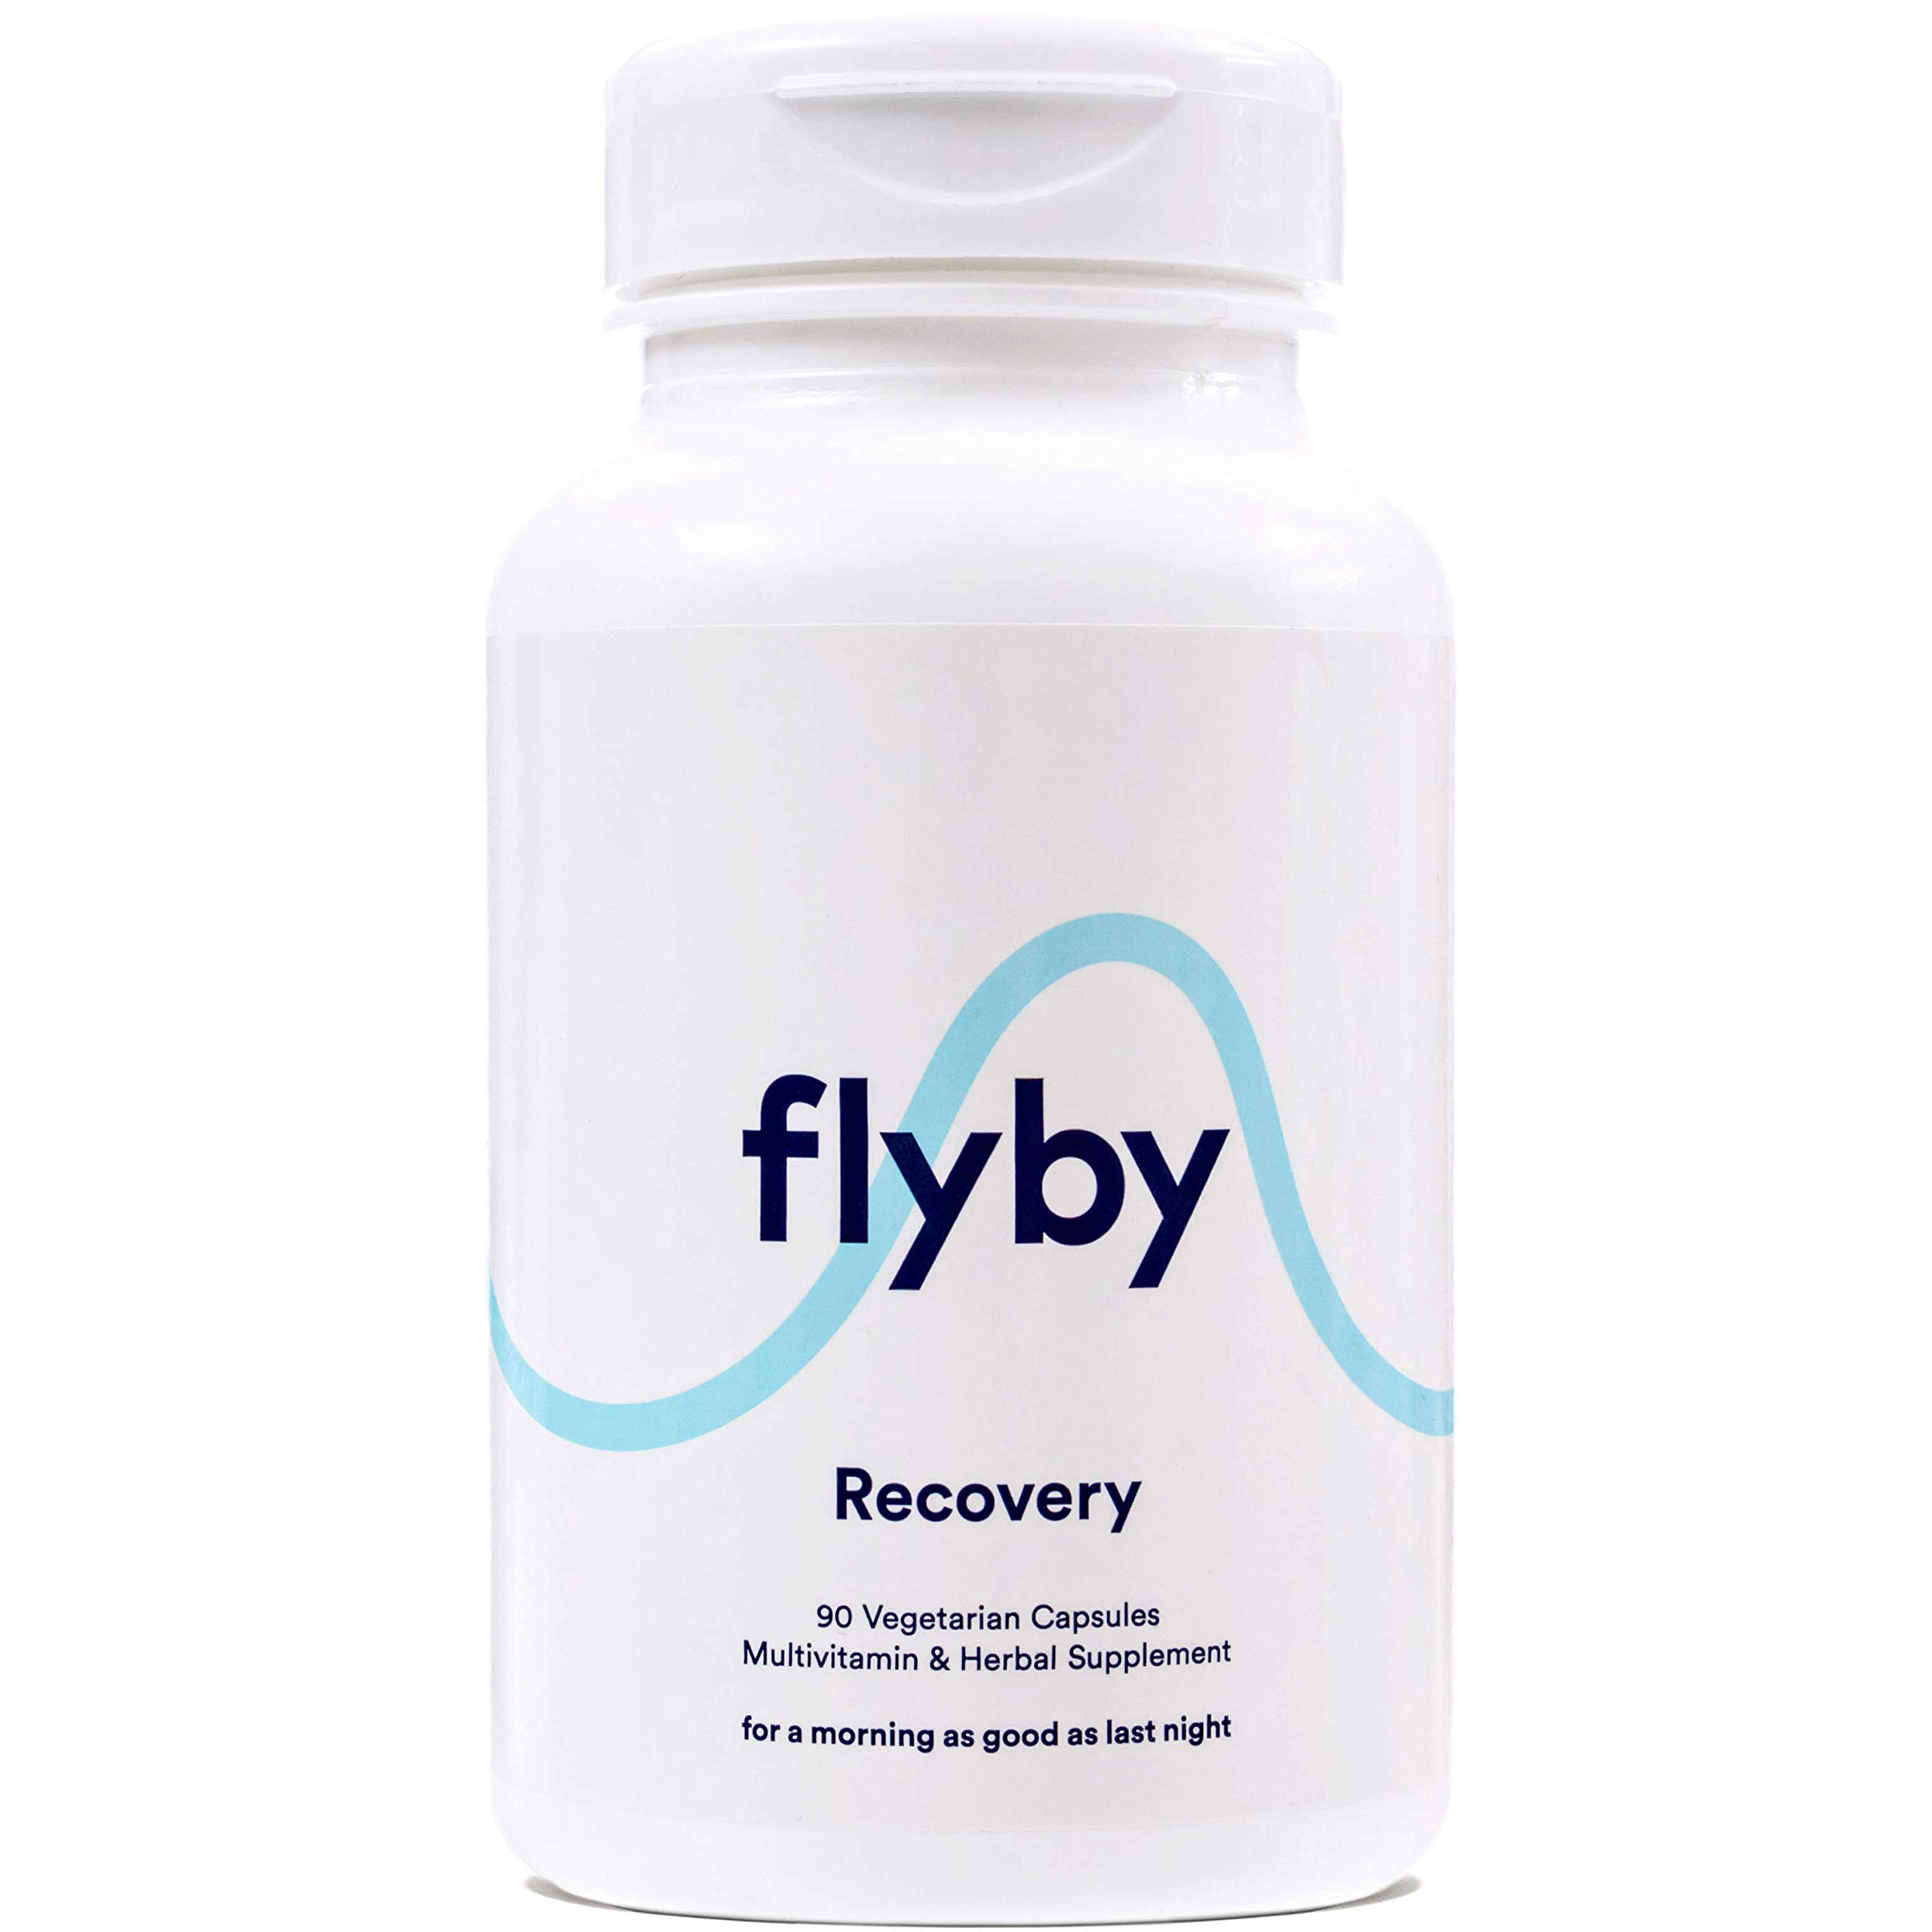 Flyby Hangover Cure & Prevention Pills (90 Capsules) | Dihydromyricetin (DHM), Chlorophyll, Prickly Pear, N-Acetyl-Cysteine, Milk Thistle for Morning After Alcohol Recovery & Aid | Certified Organic by Flyby (Image #1)